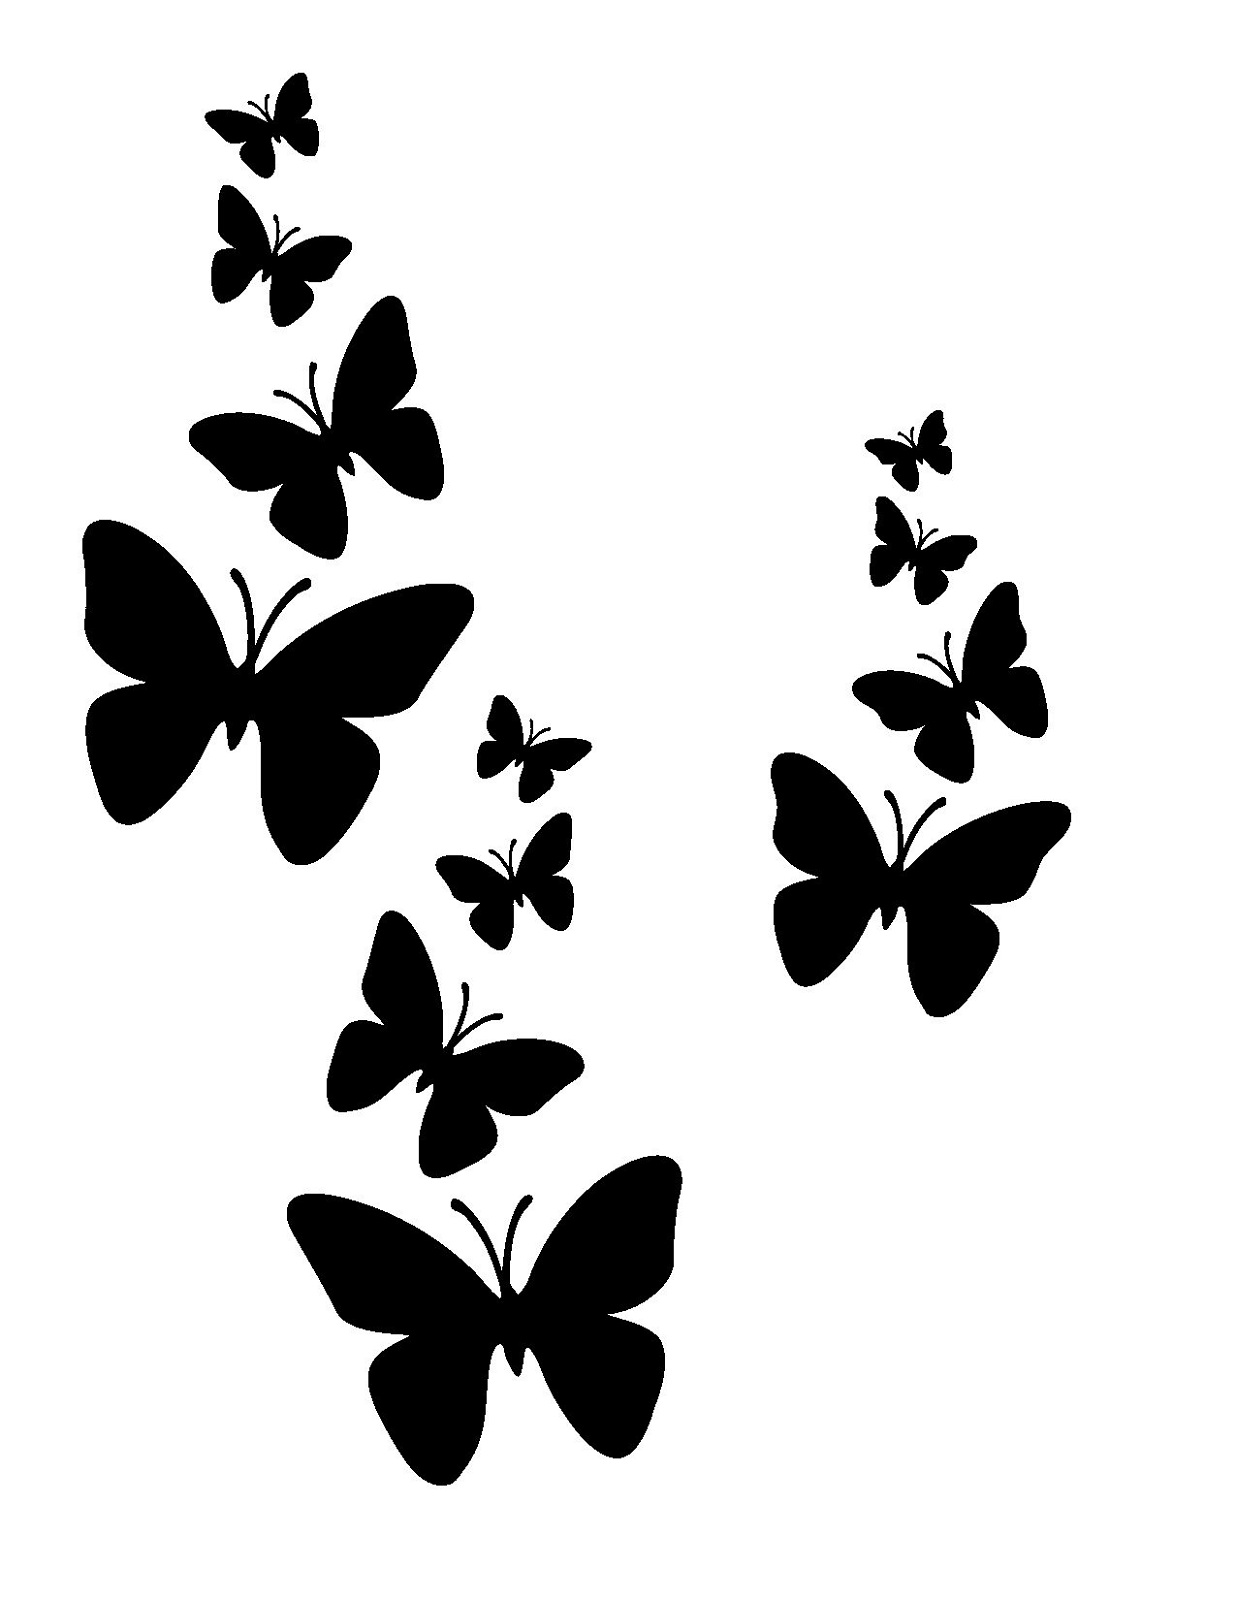 Butterfly Wall Stencils Painting Printable Stencils With Simple Design Activity Shelter